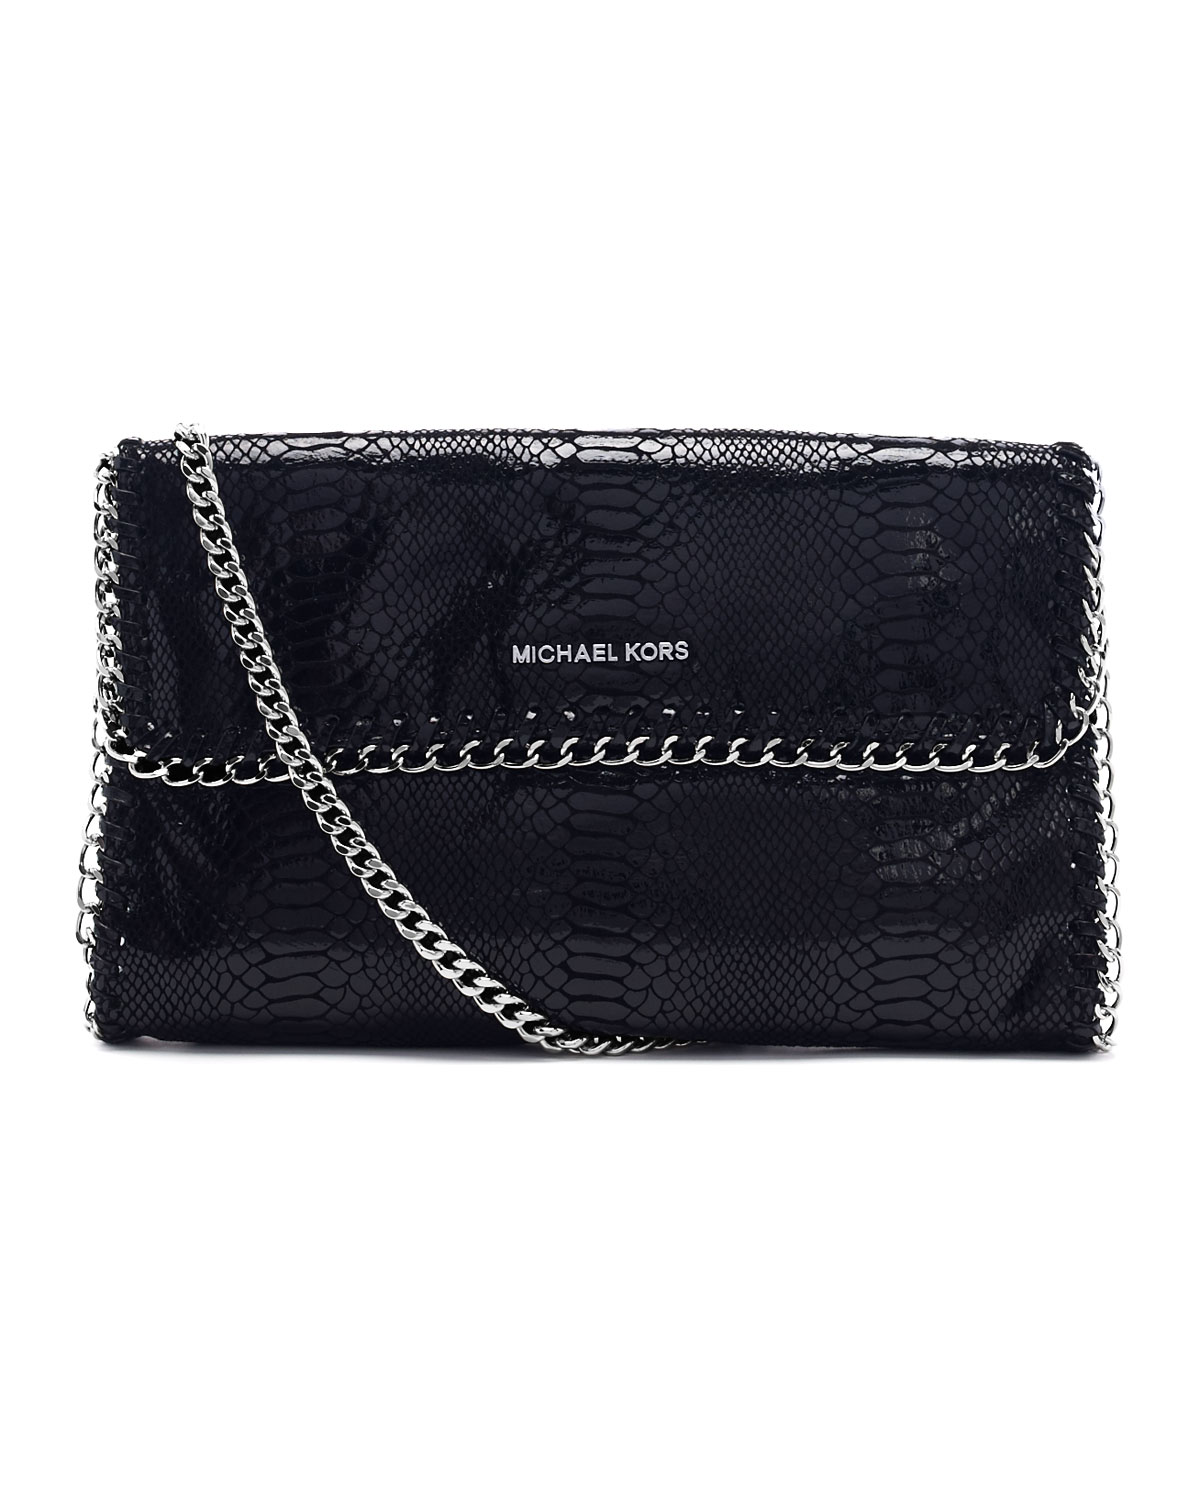 michael michael kors oversize chelsea pythonembossed clutch bag in black lyst. Black Bedroom Furniture Sets. Home Design Ideas